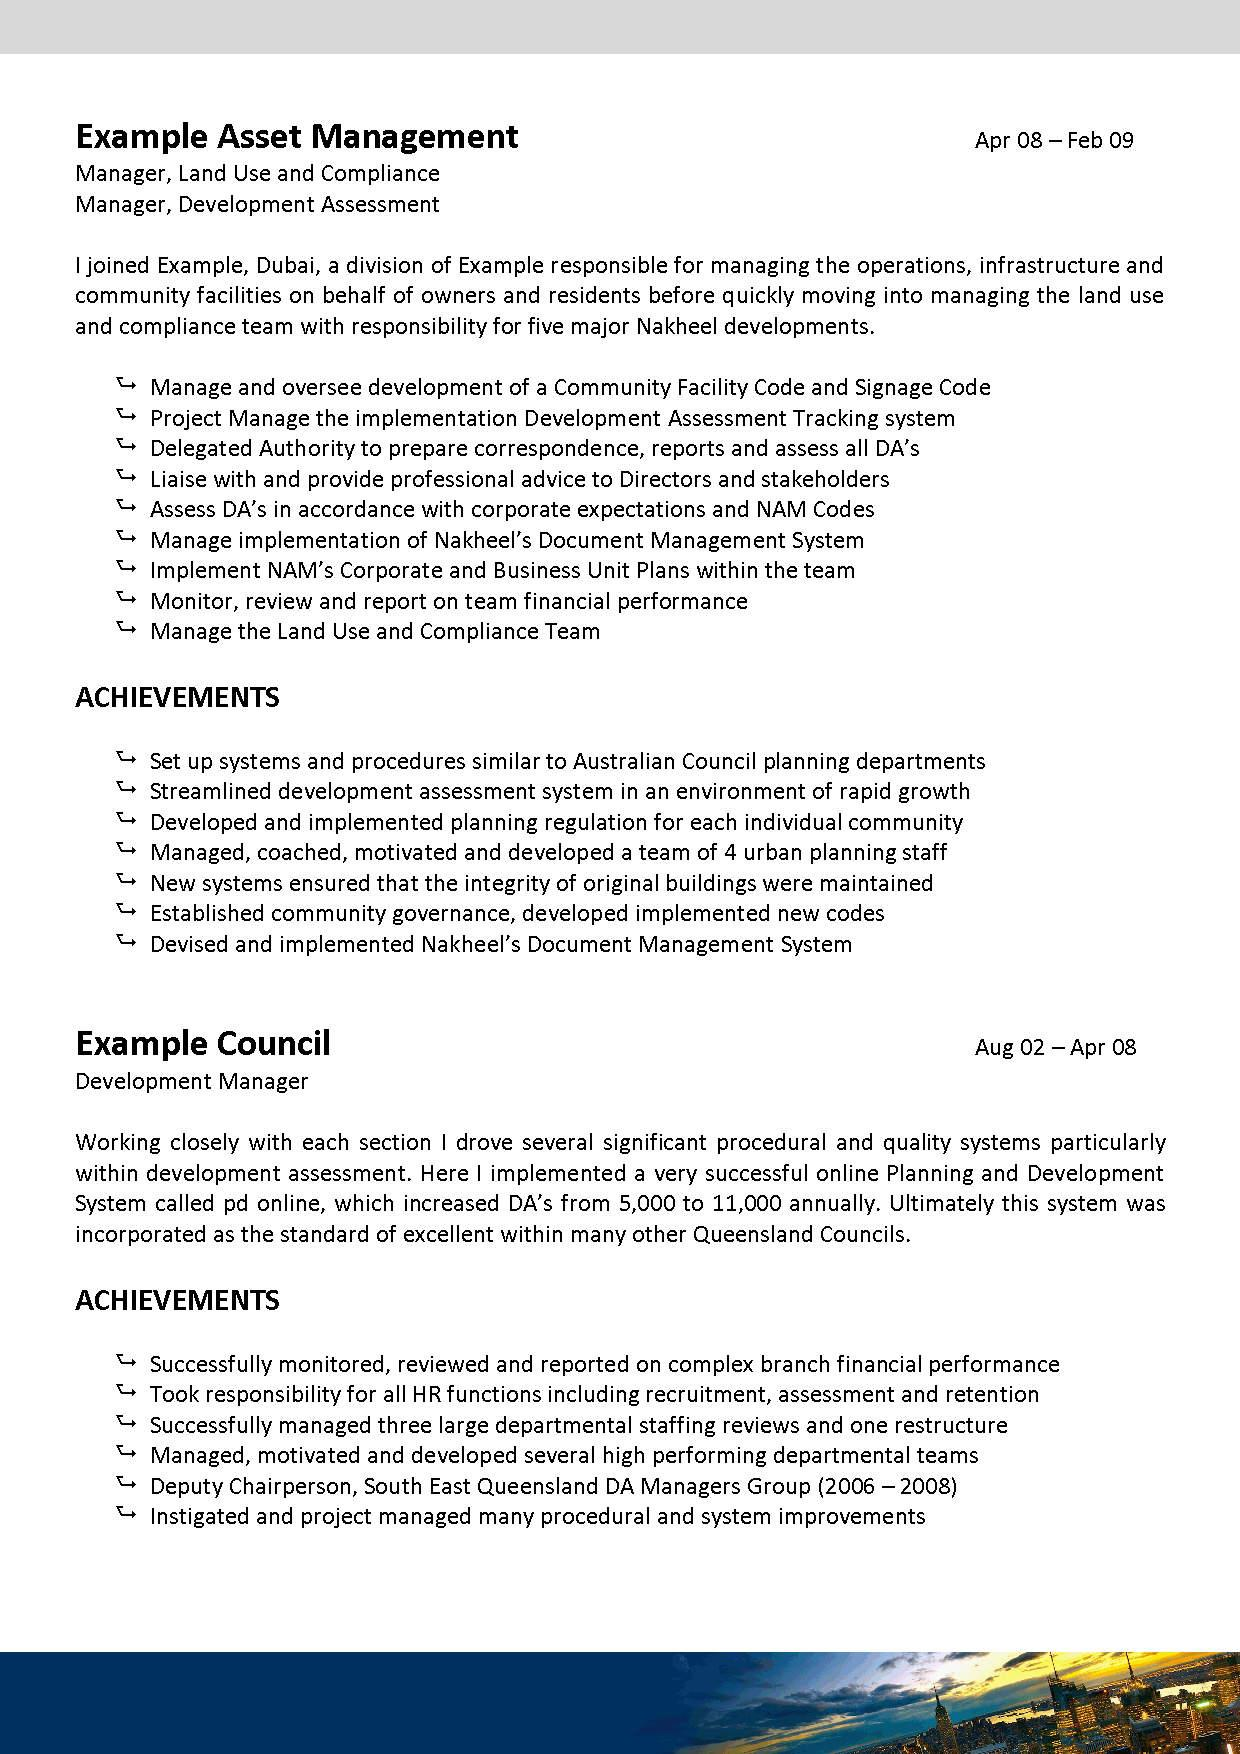 Cover Letter Format Copy And Paste | Cover Letter And Resume ...